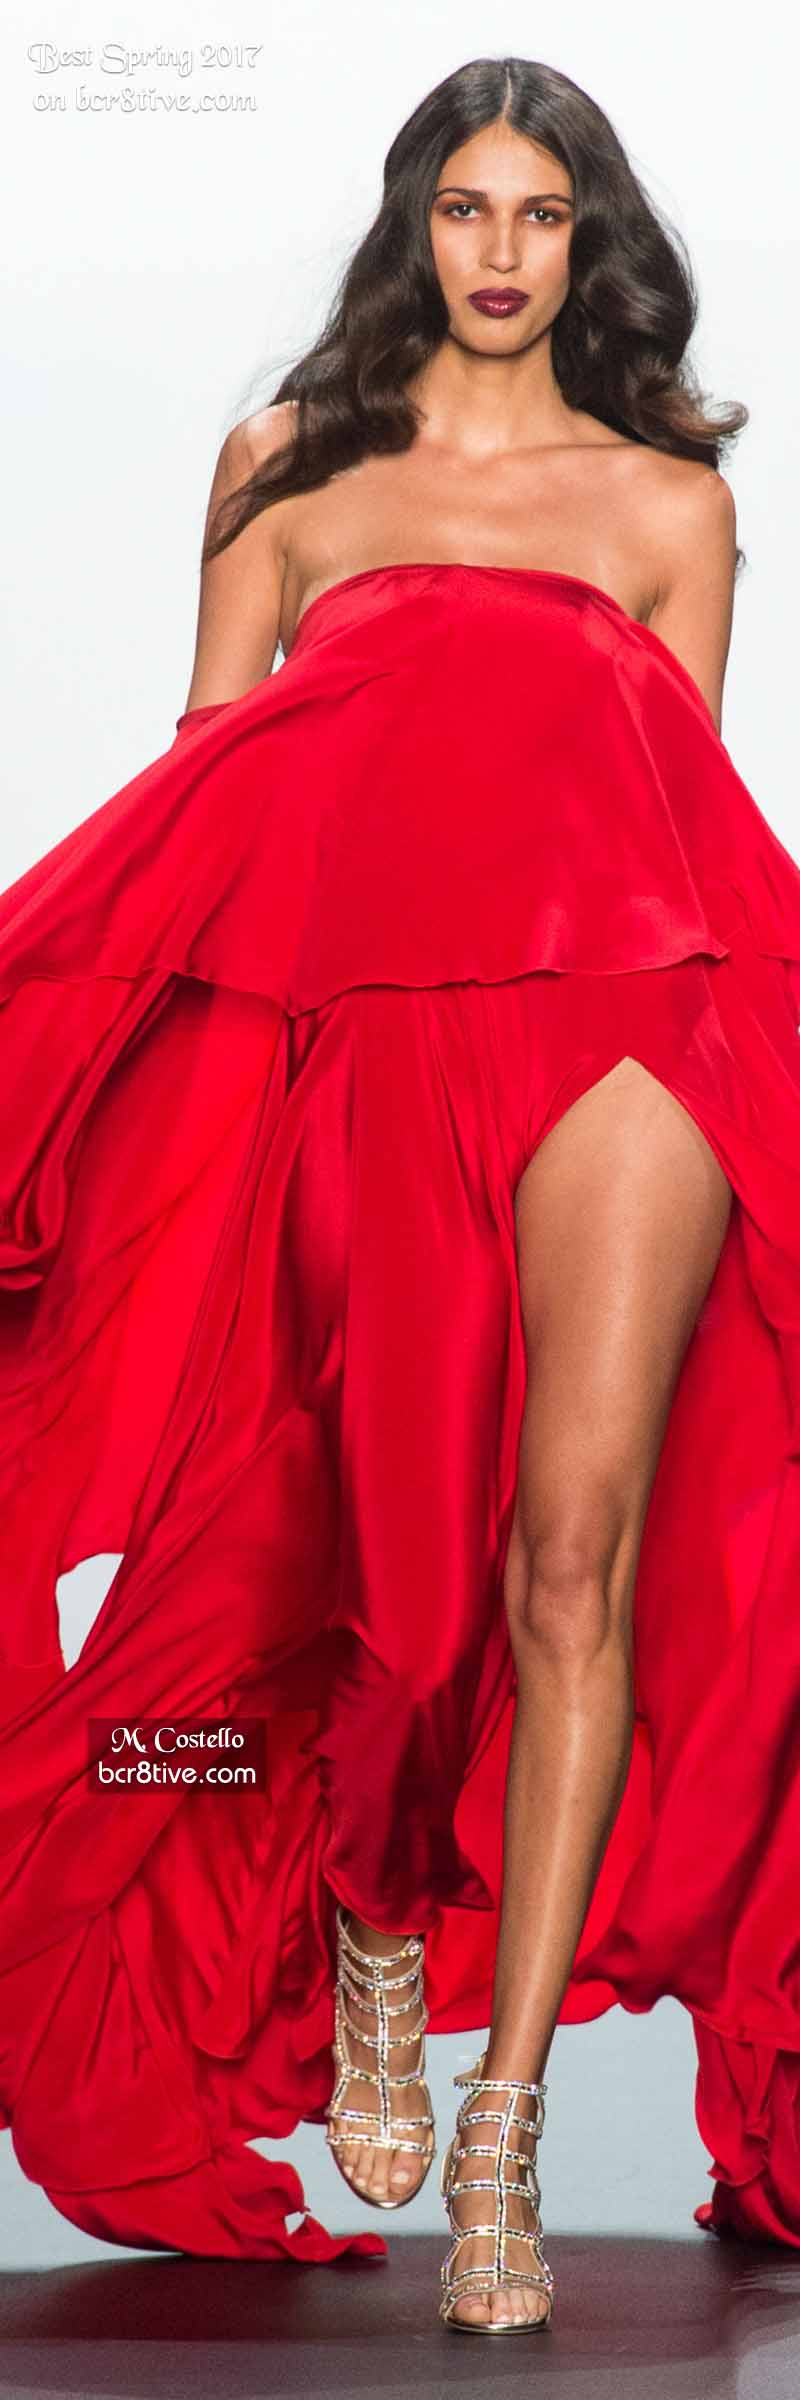 Michael Costello - The Best Looks from New York Fashion Week Spring 2017